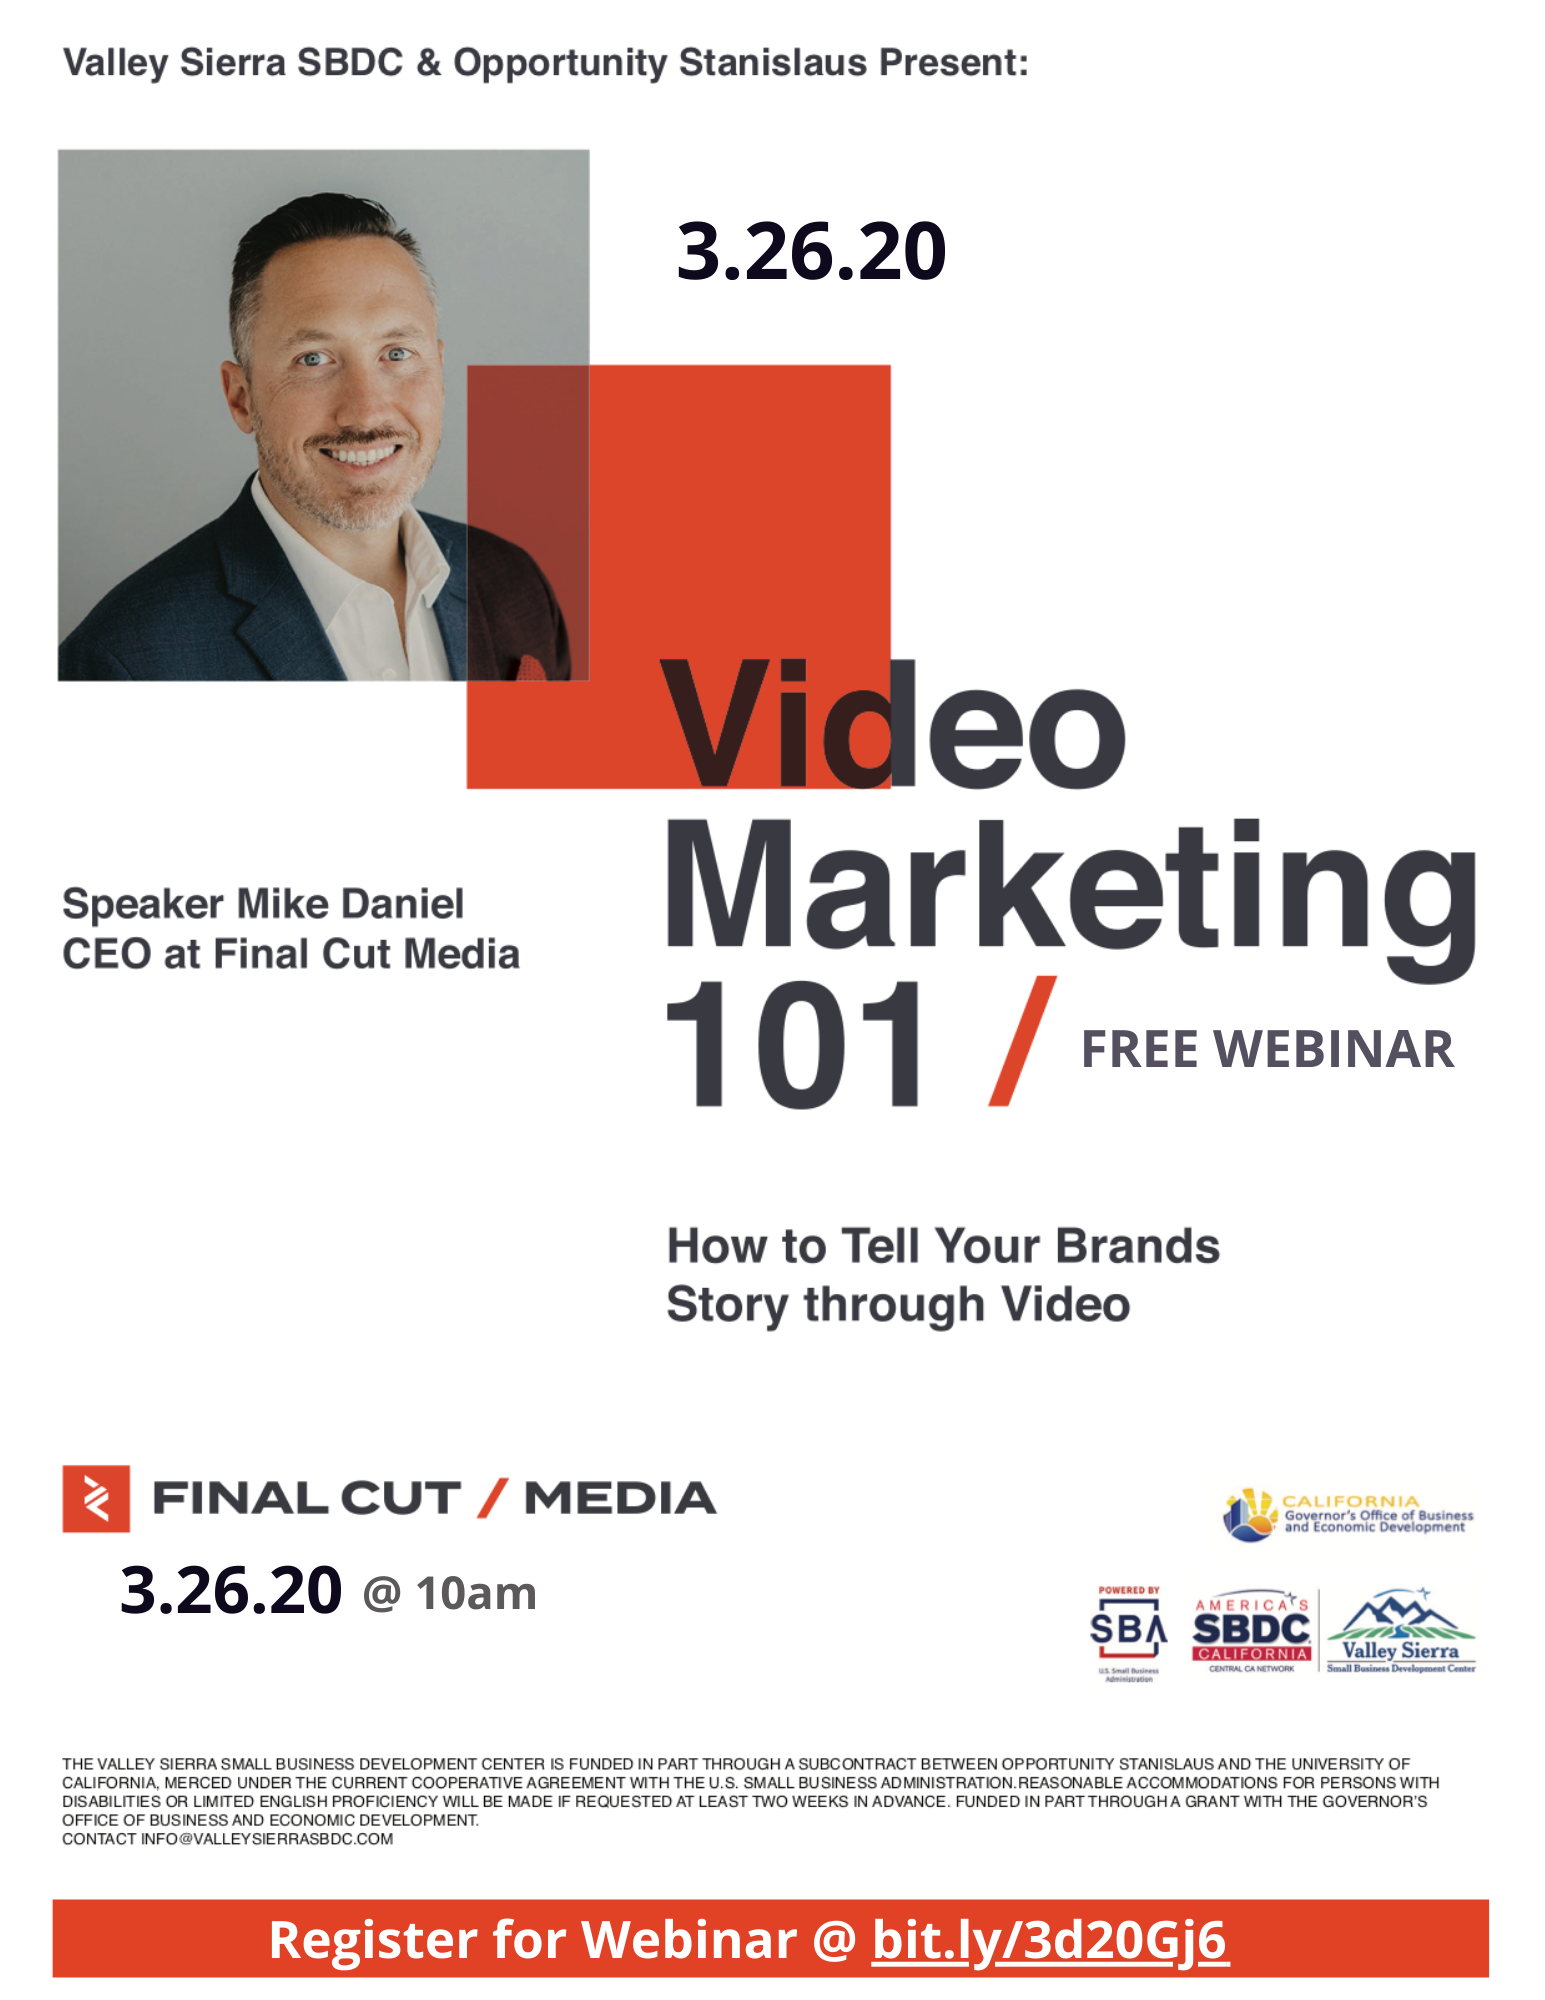 Event Flyer, Changed to Webinar, Video Marketing 101, @ the Valley Sierra SBDC, FREE.